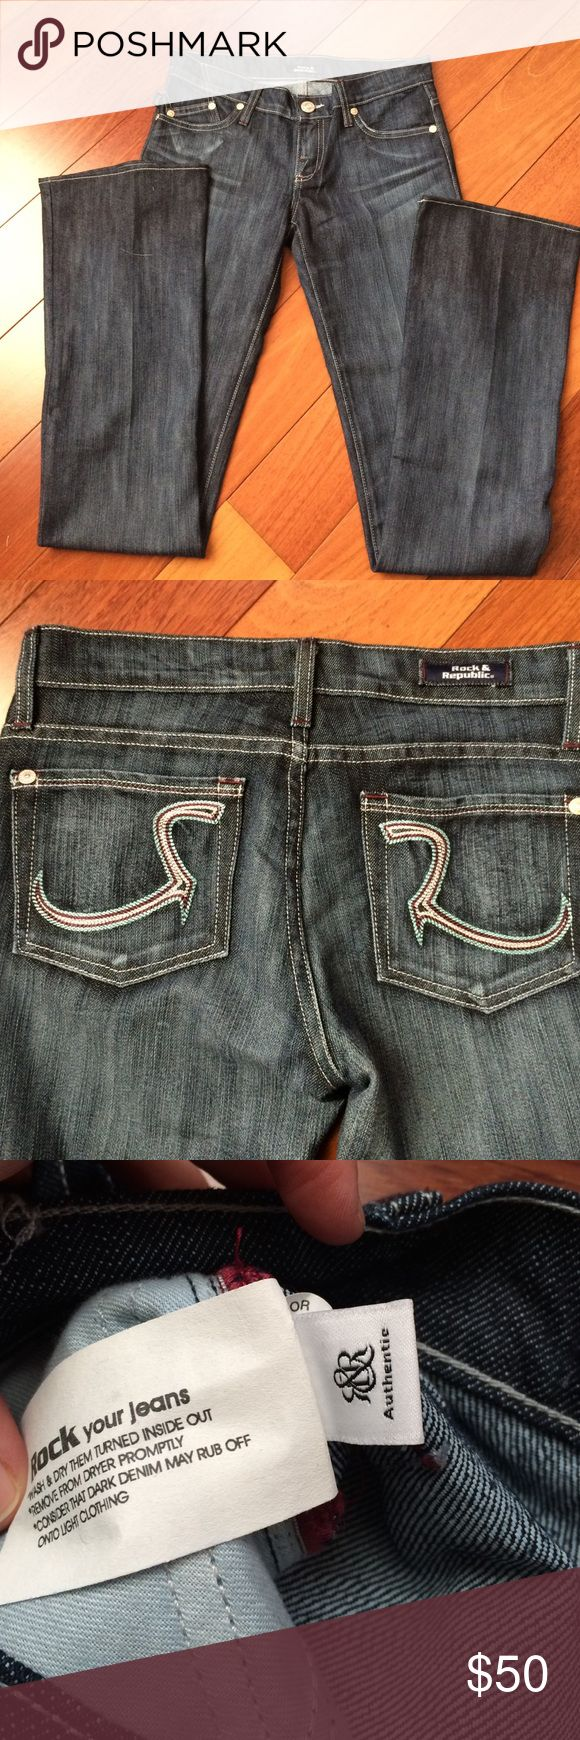 NWOT Rock and Republic Low Rise Flare Size 25 Inseam 34 inches, slight flare. Never worn, zero flaws. Best quality denim. Rock & Republic Jeans Flare & Wide Leg